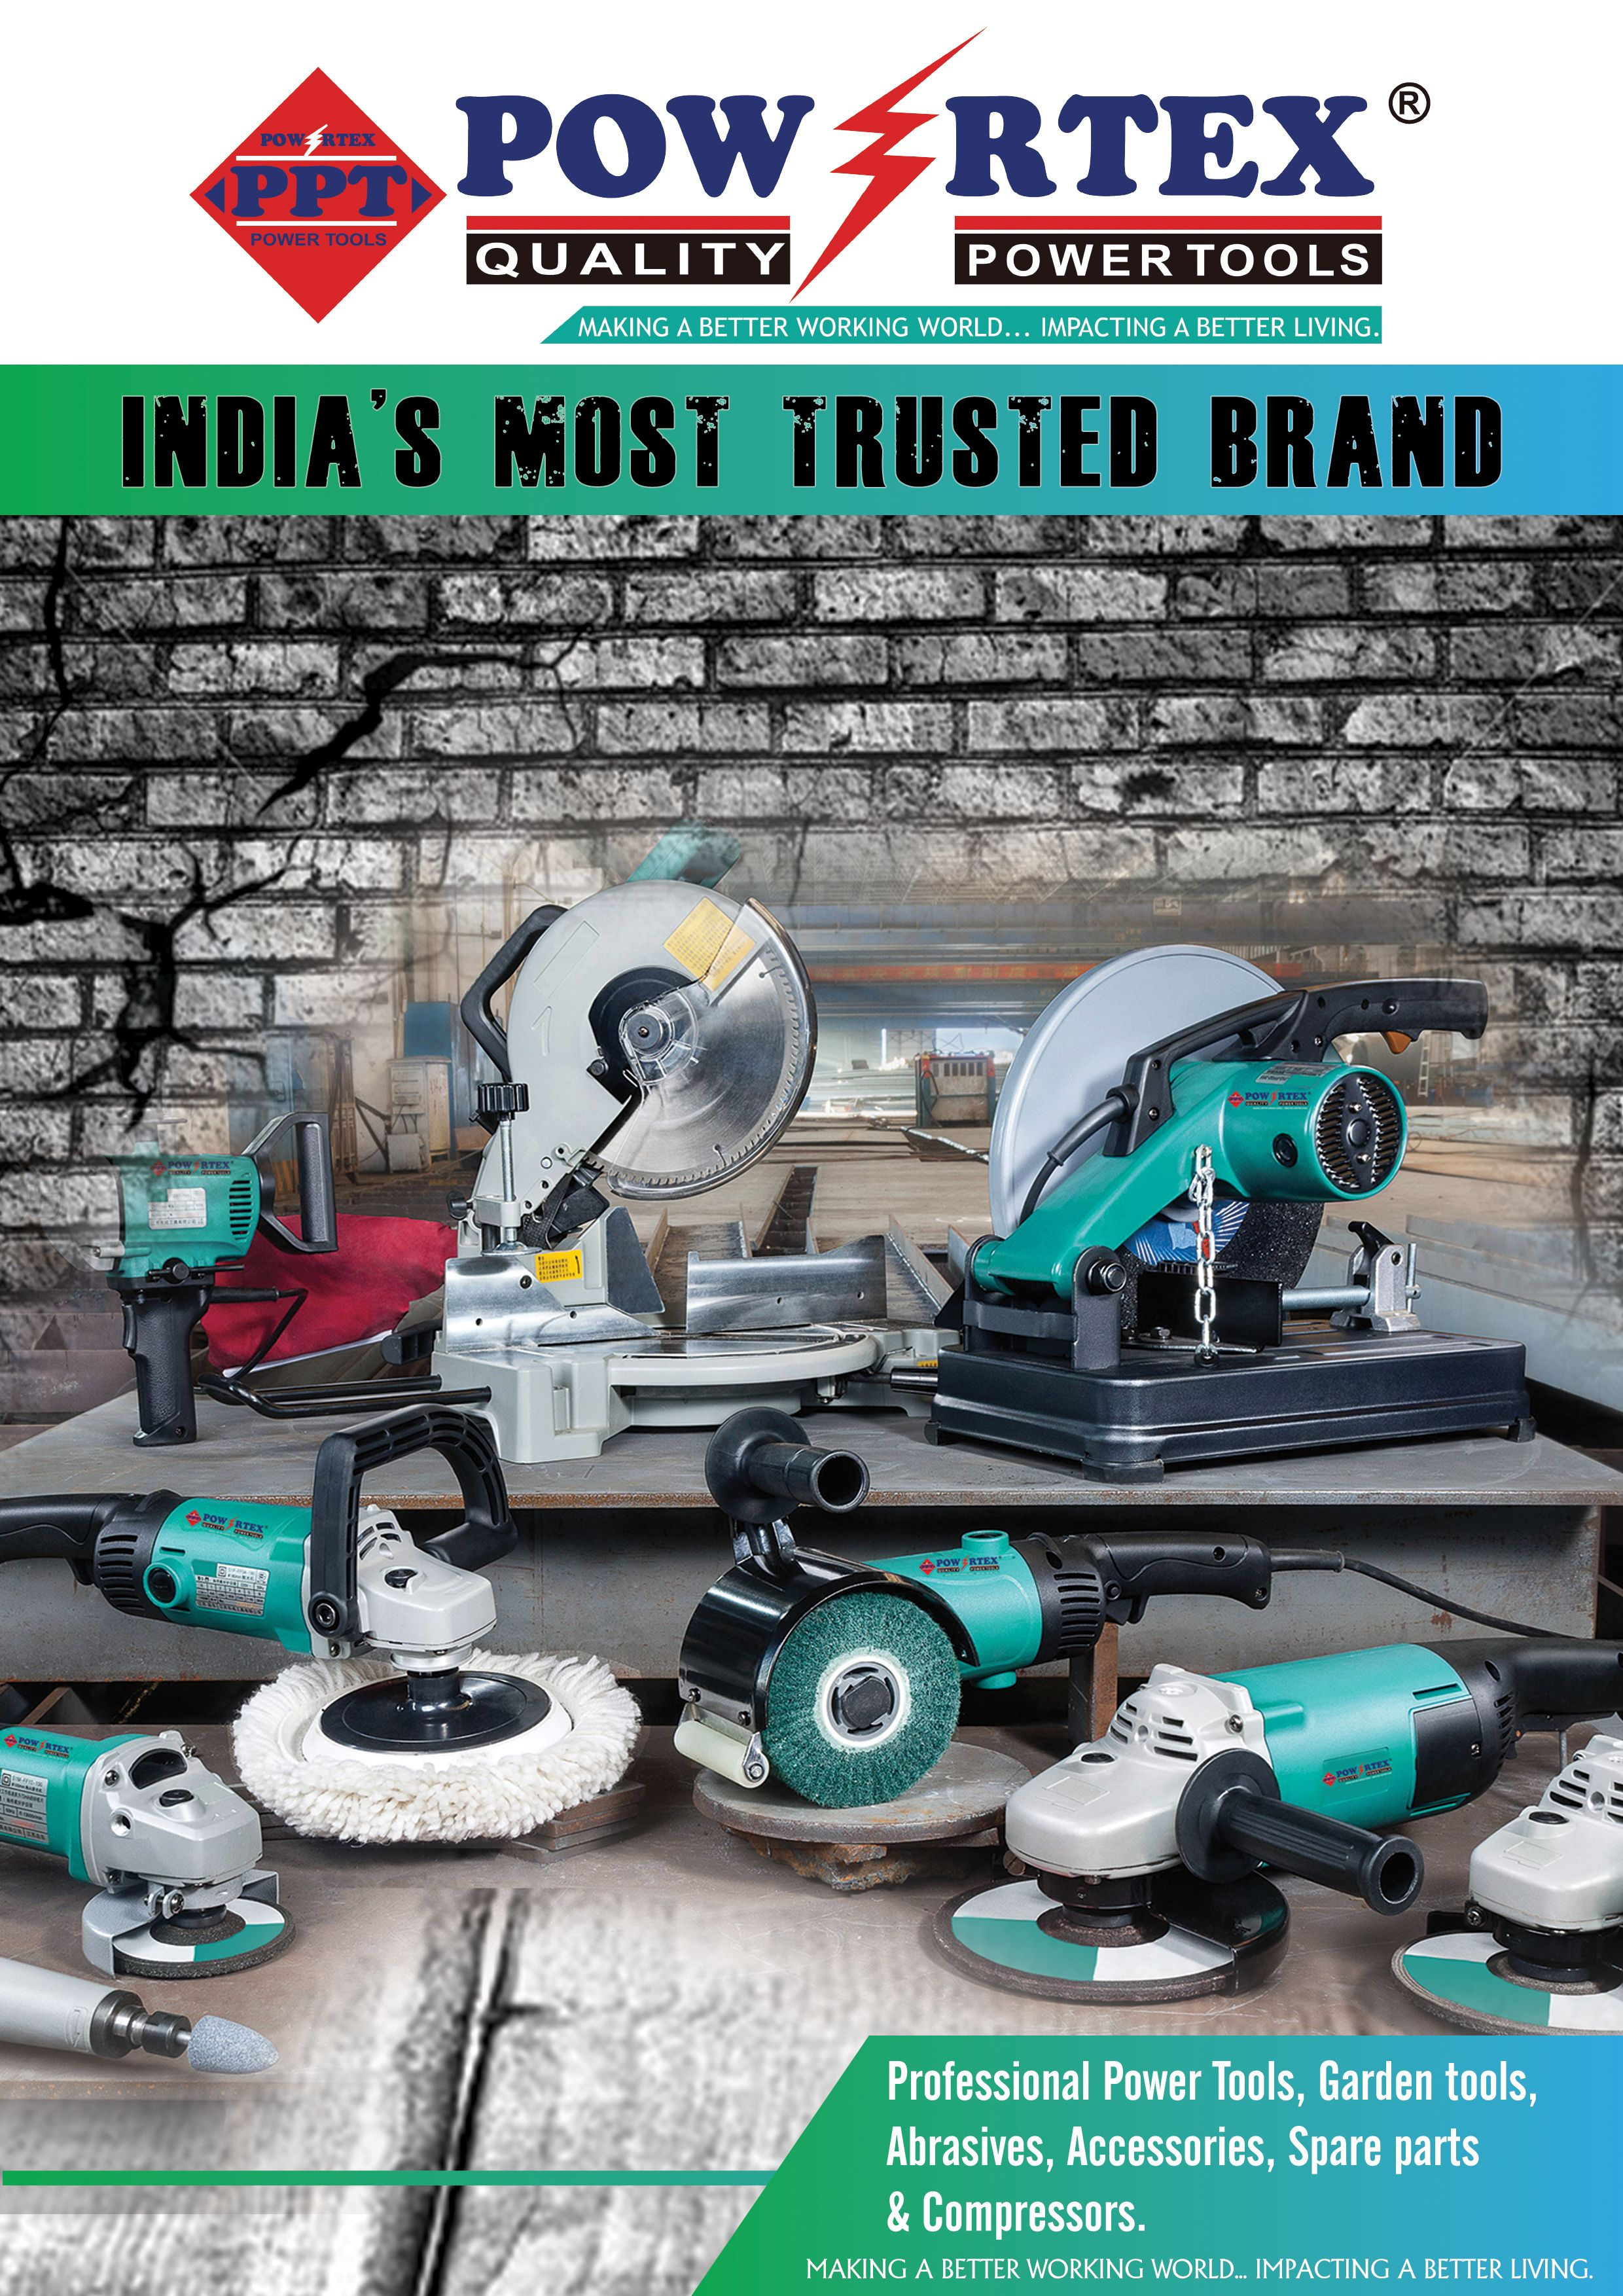 Powertex Devote To Producing Industrial Quality Power Tools